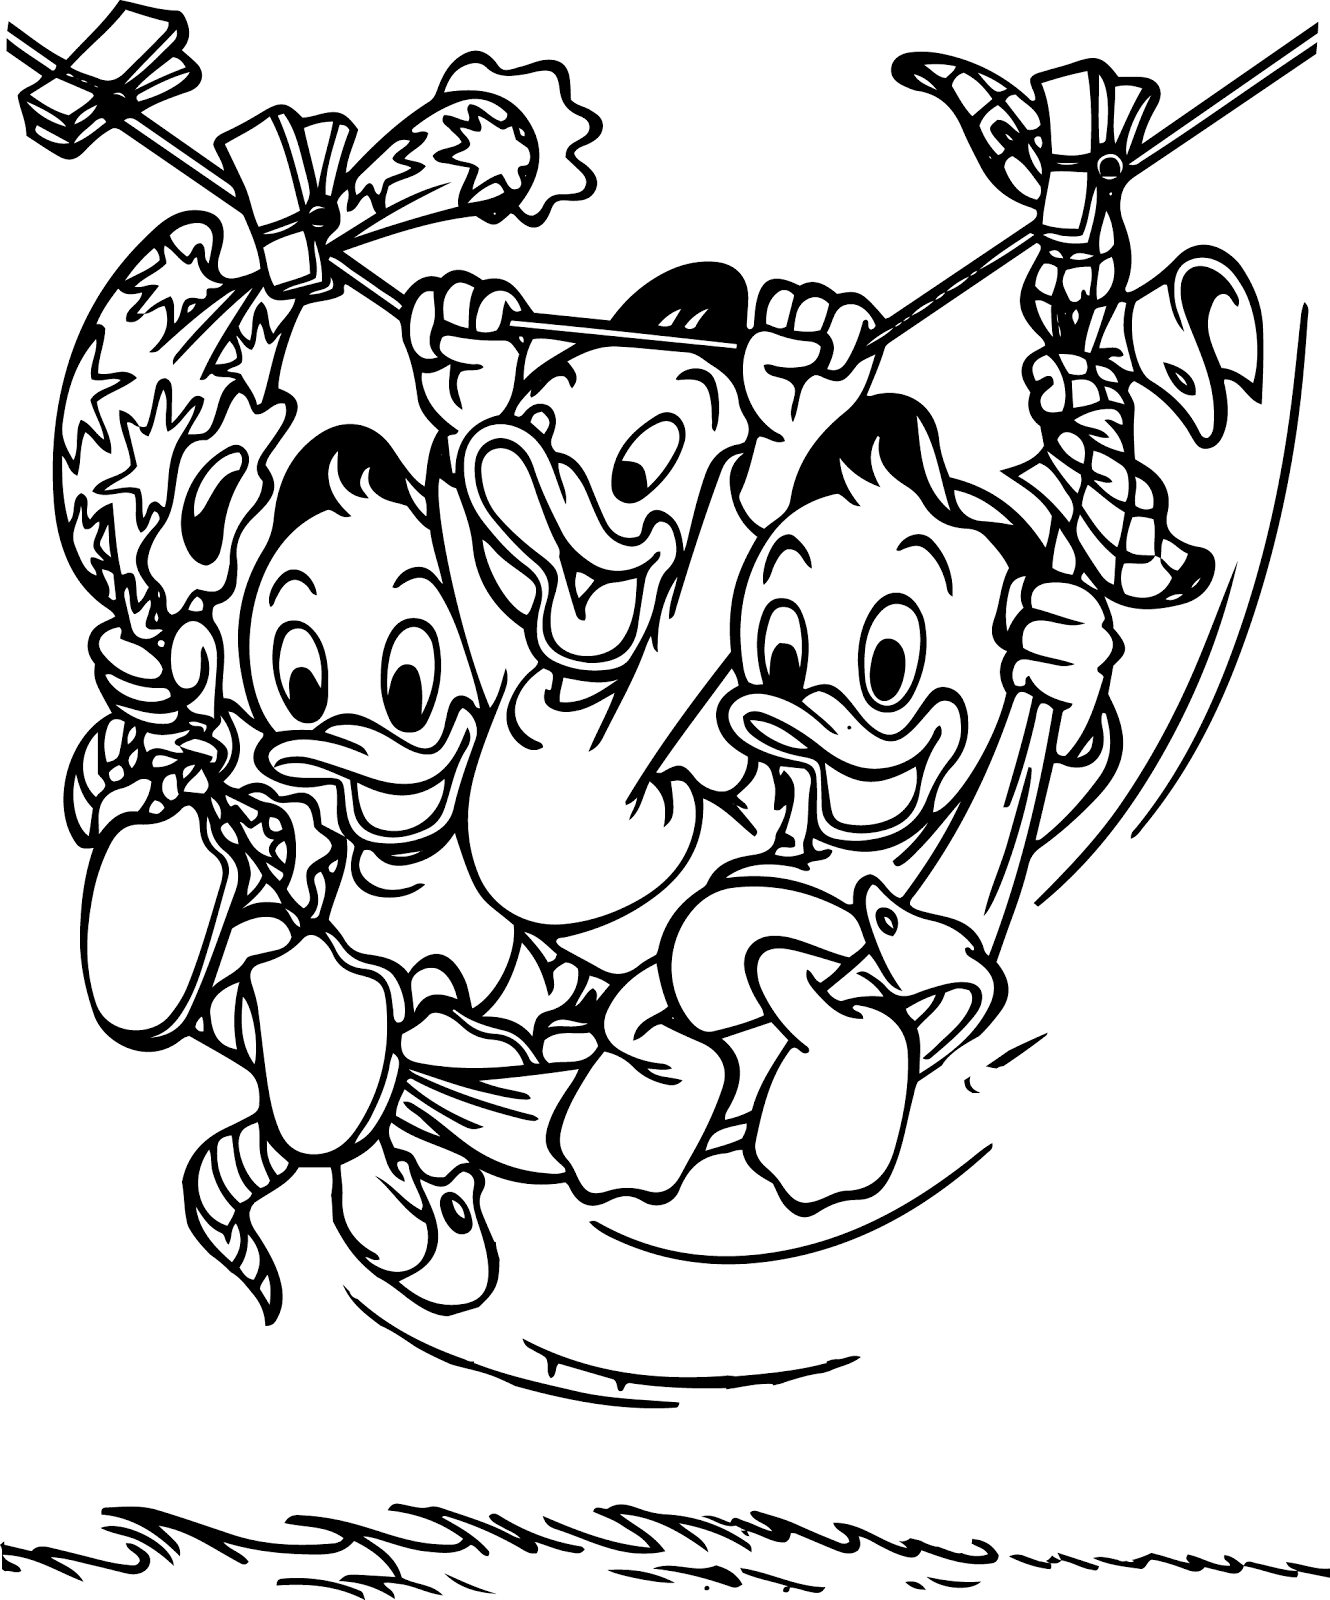 disney character coloring pages childrens disney coloring pages download and print for free character coloring disney pages